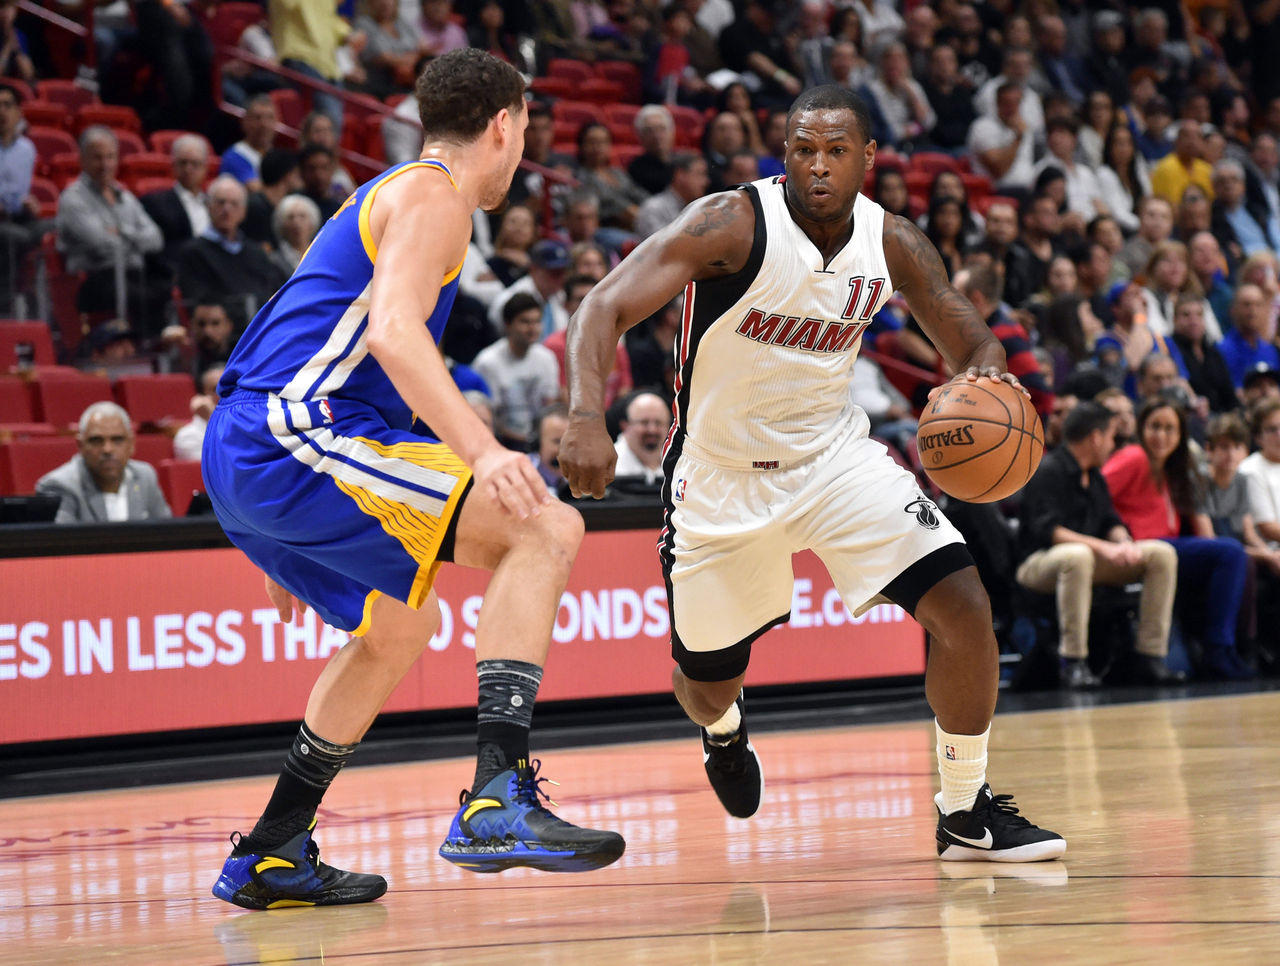 Cropped 2017 01 24t014044z 343286012 nocid rtrmadp 3 nba golden state warriors at miami heat